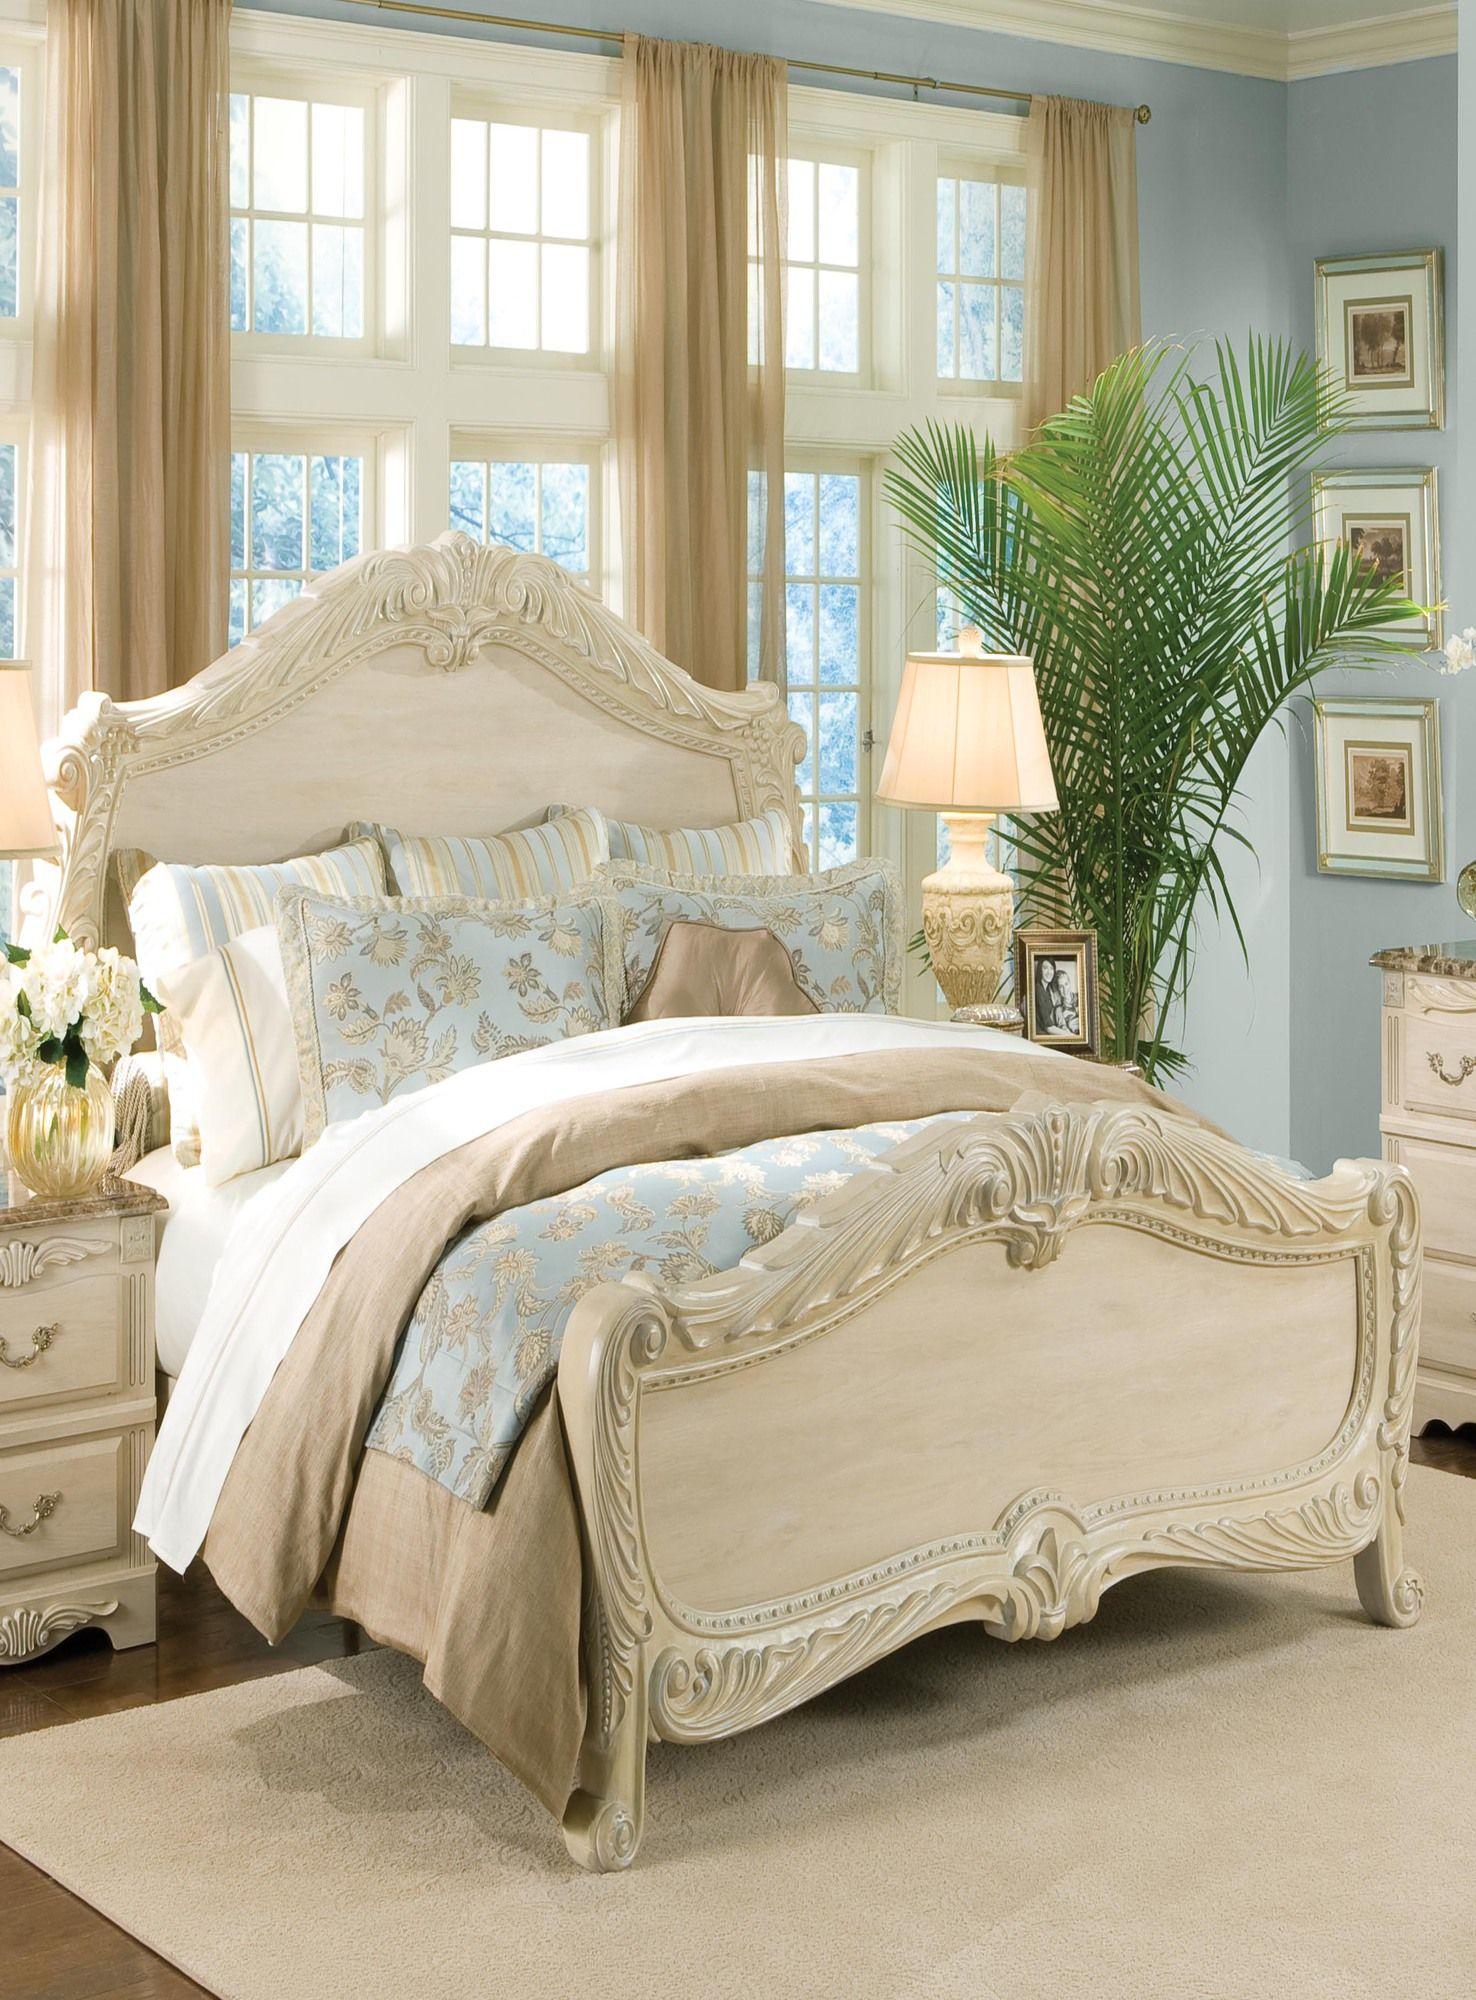 Cream Color Bedroom Furniture, Cream Bedroom